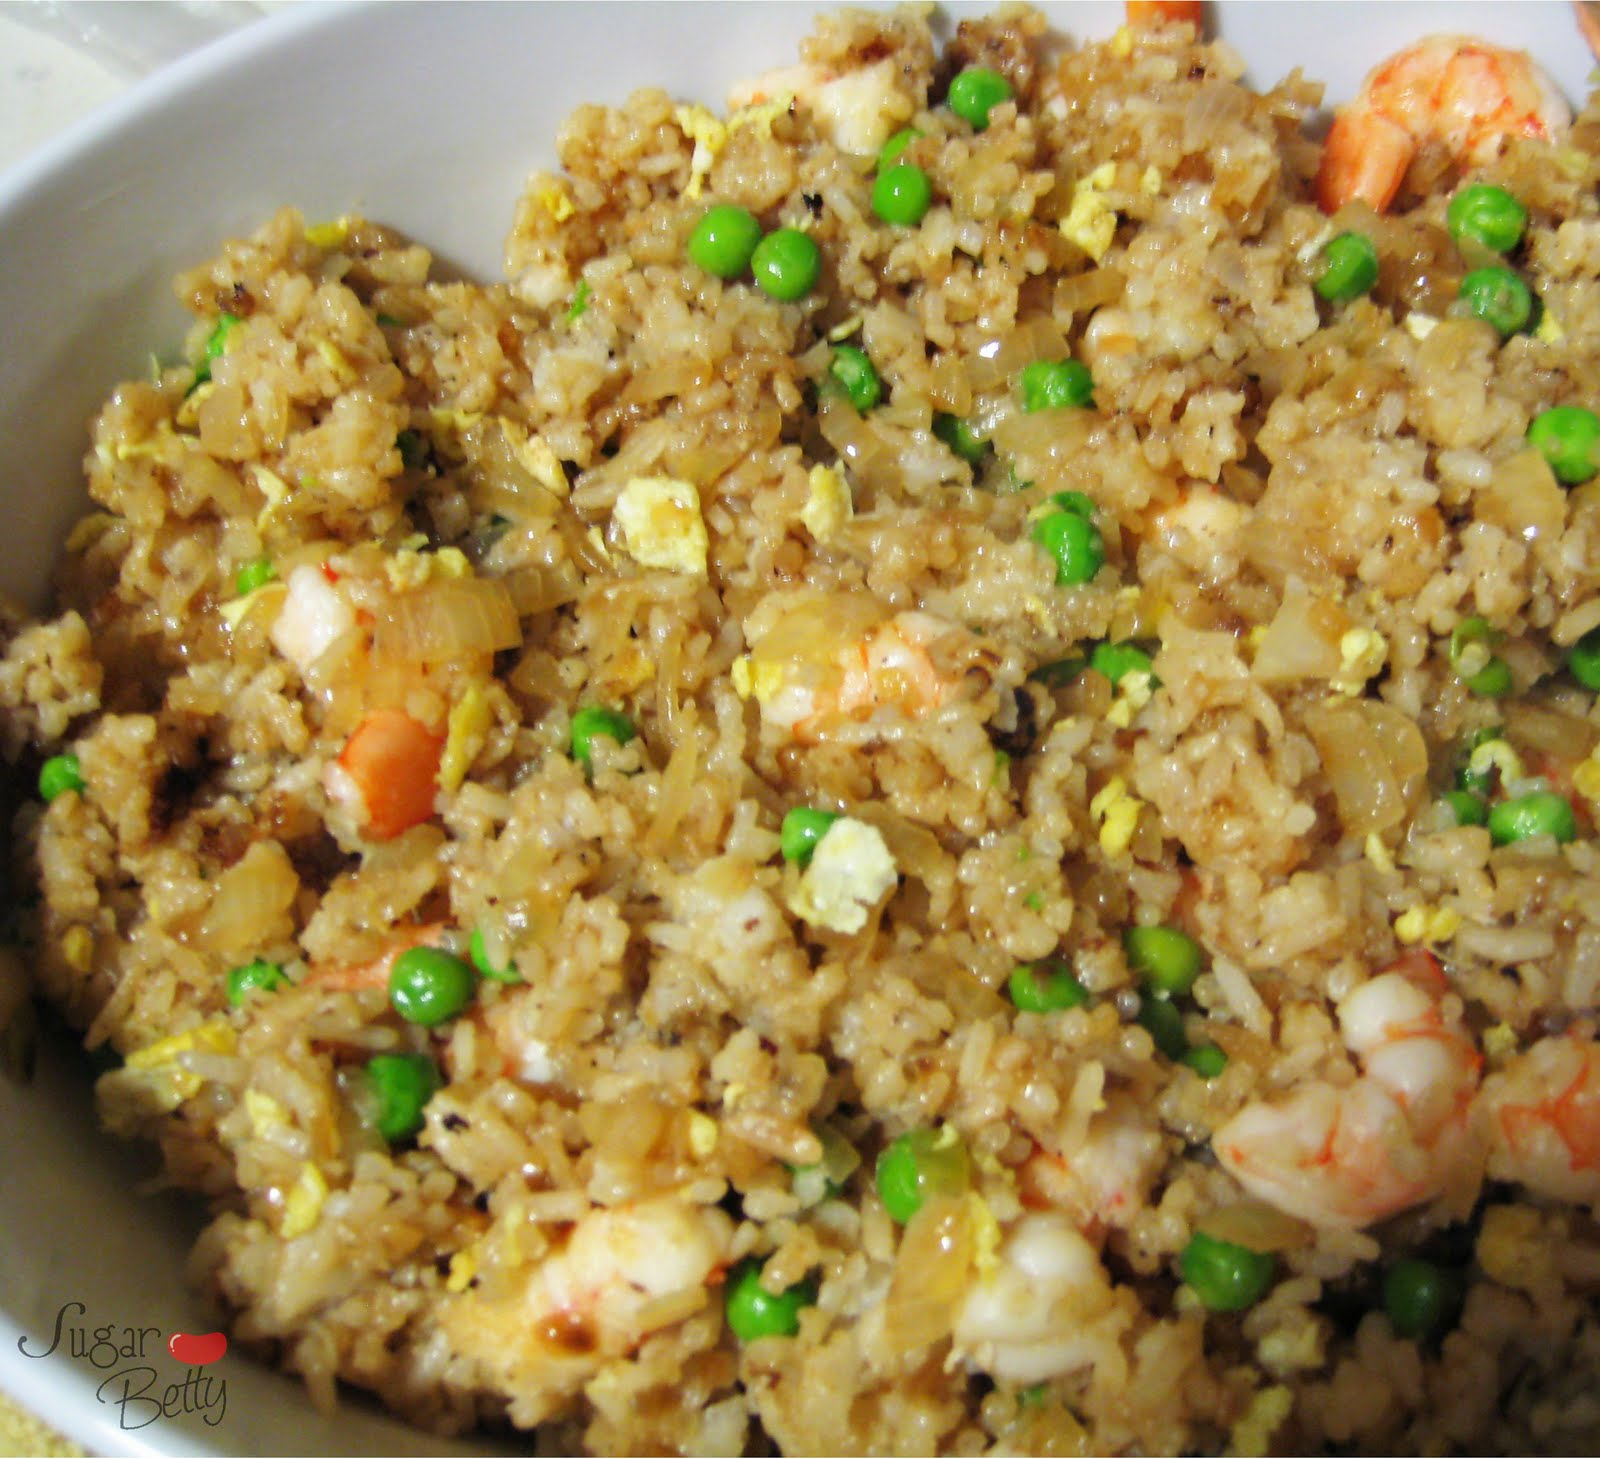 shrimp fried rice disease pictures - reomicdeibata80 - Blogcu.com